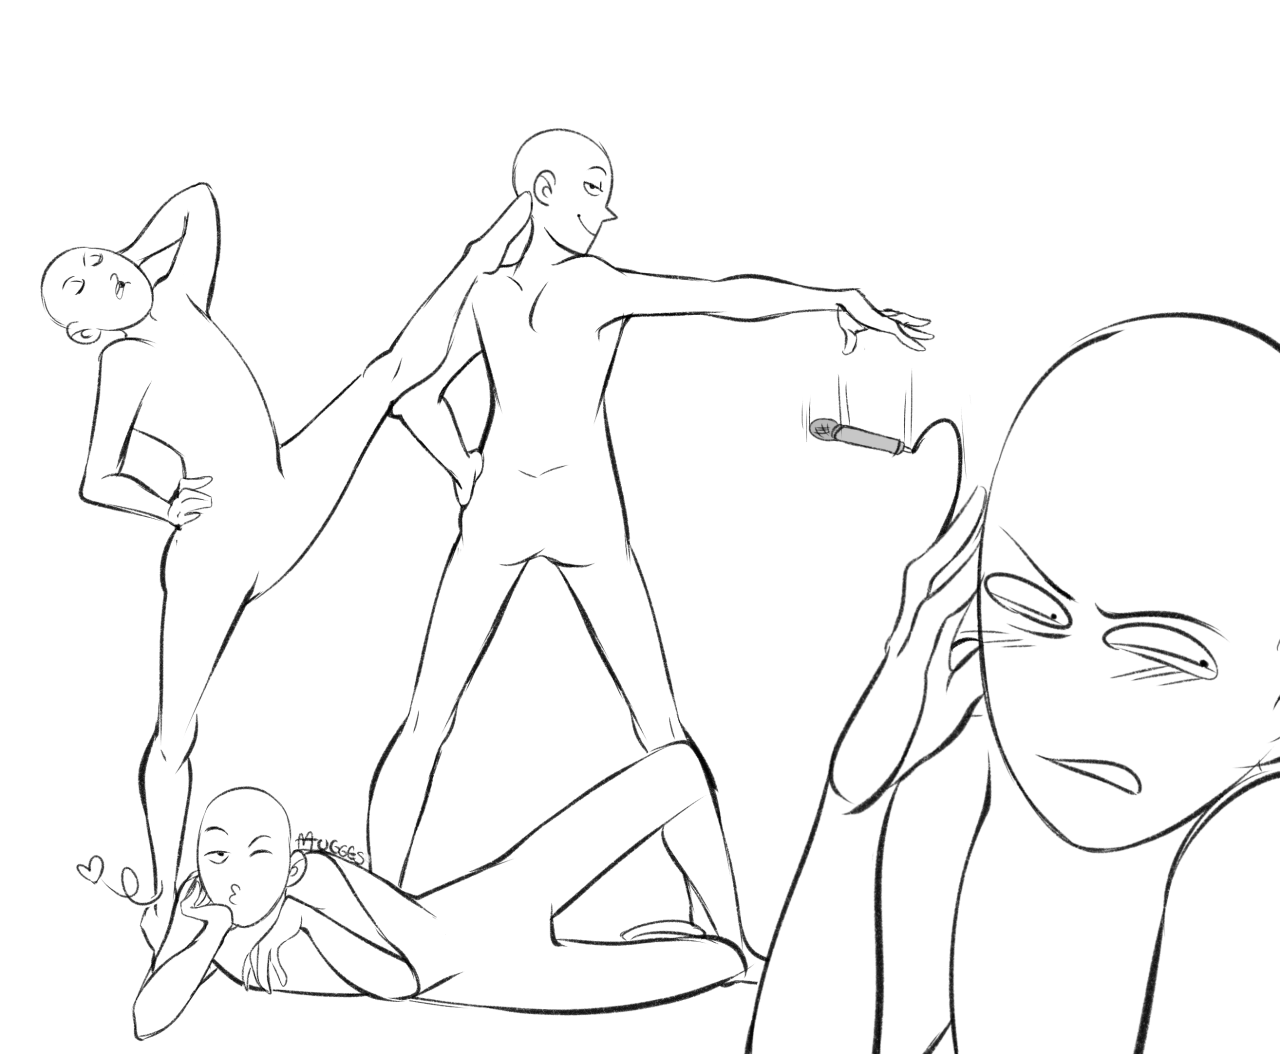 The Line Art Challenge : A for all squad drawing content mugges draw the